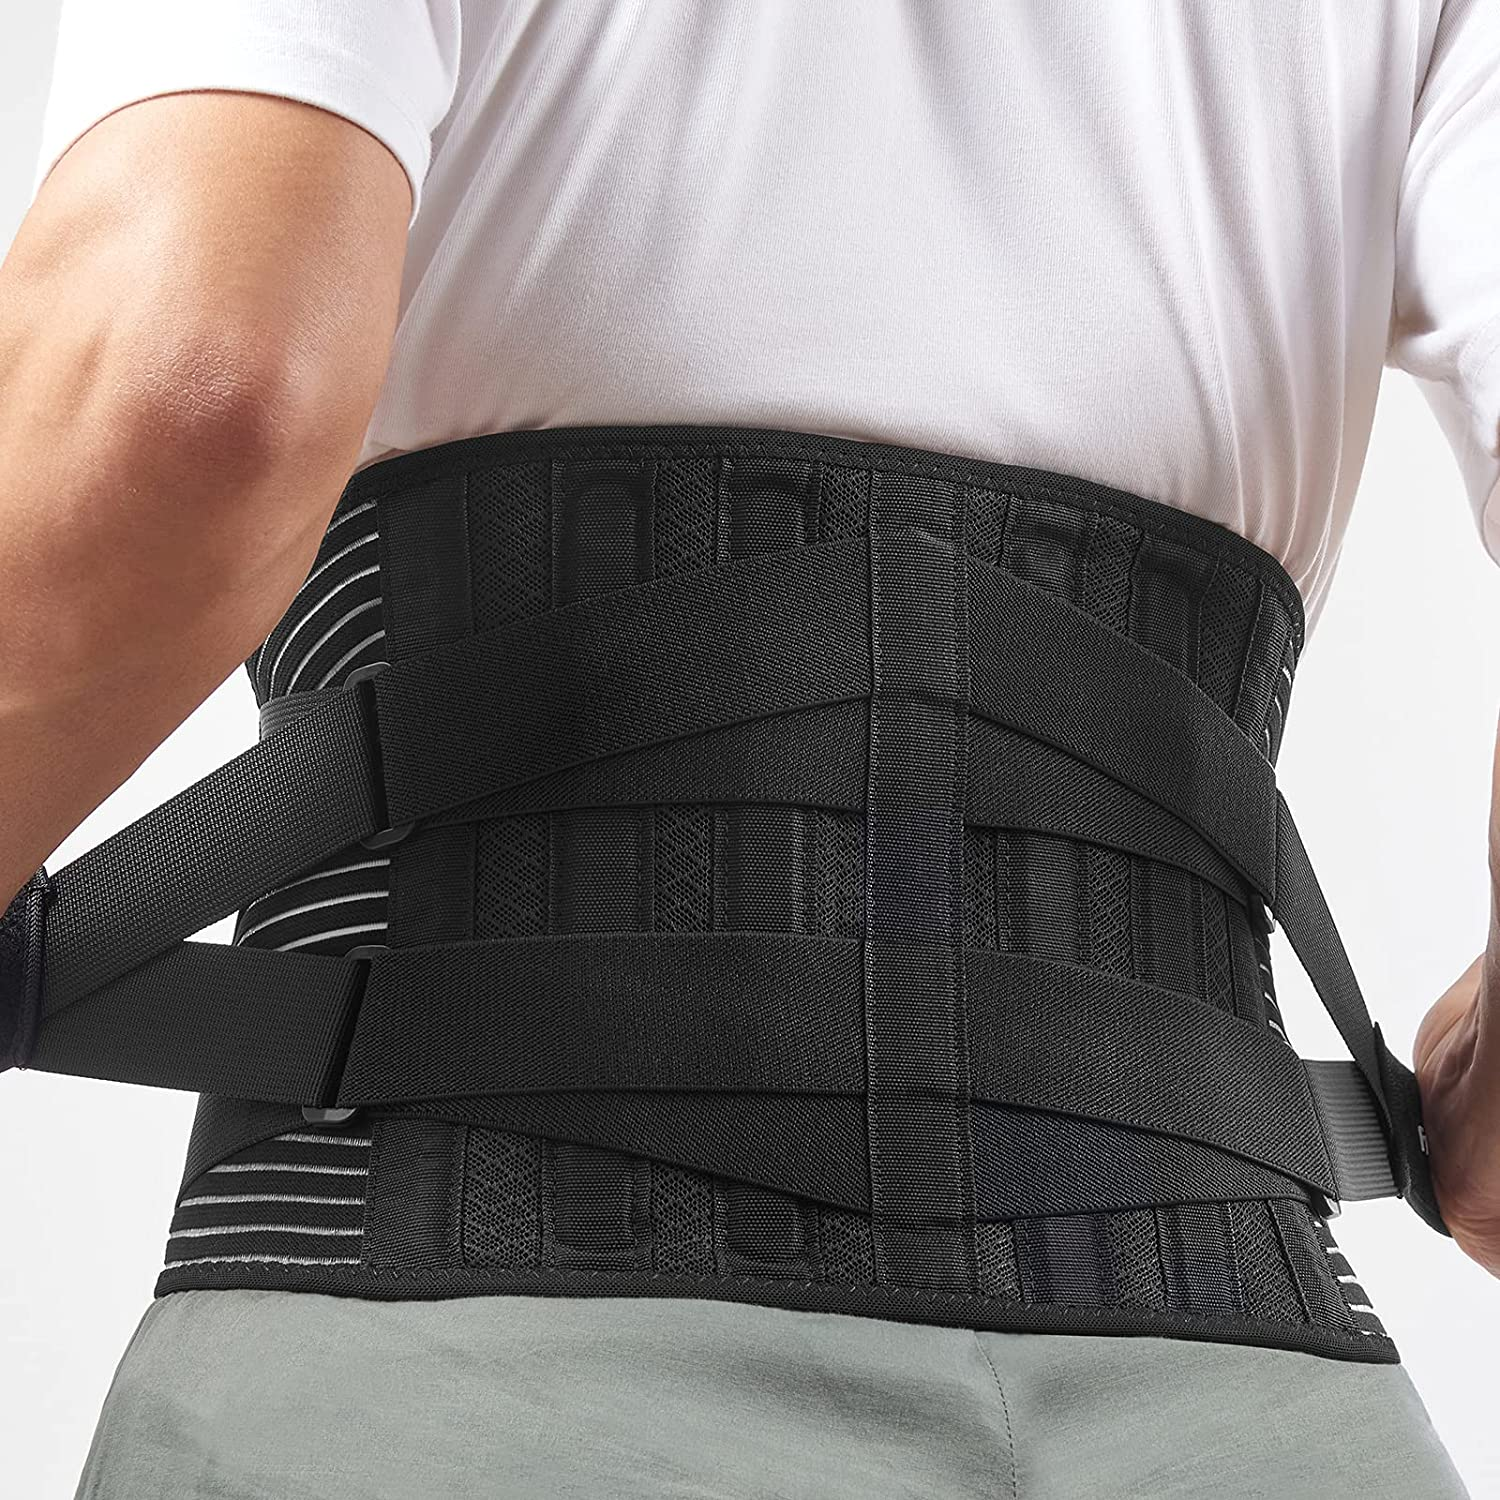 Freetoo Back Brace for Lower Max Long Beach Mall 65% OFF Pain Brea with Stays 4 Relief